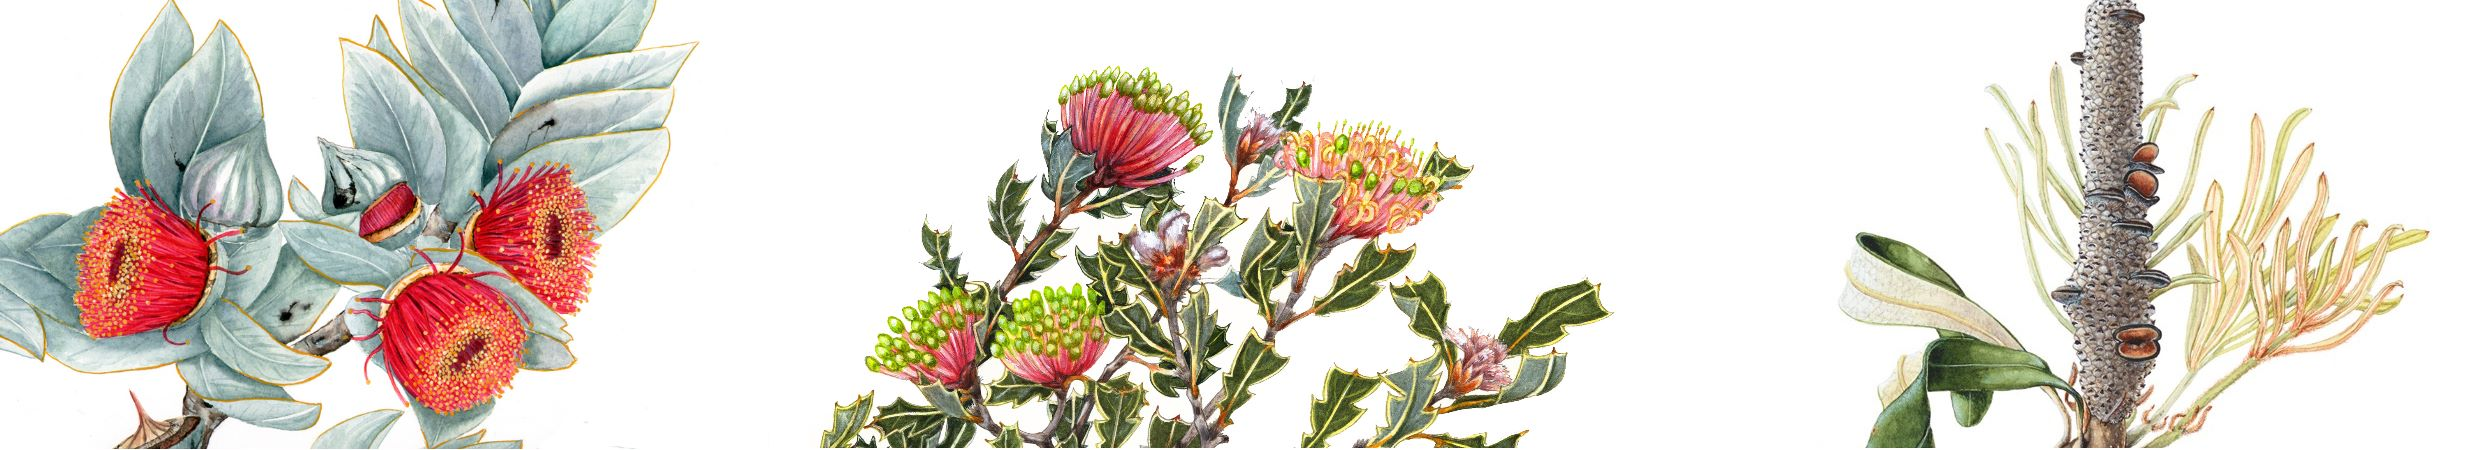 Artwork from left to right: George Kraus - Eucalyptus macrocarpa, Mim Wells - Banksia cuneata,  David Reynolds - Banksia integrifolia